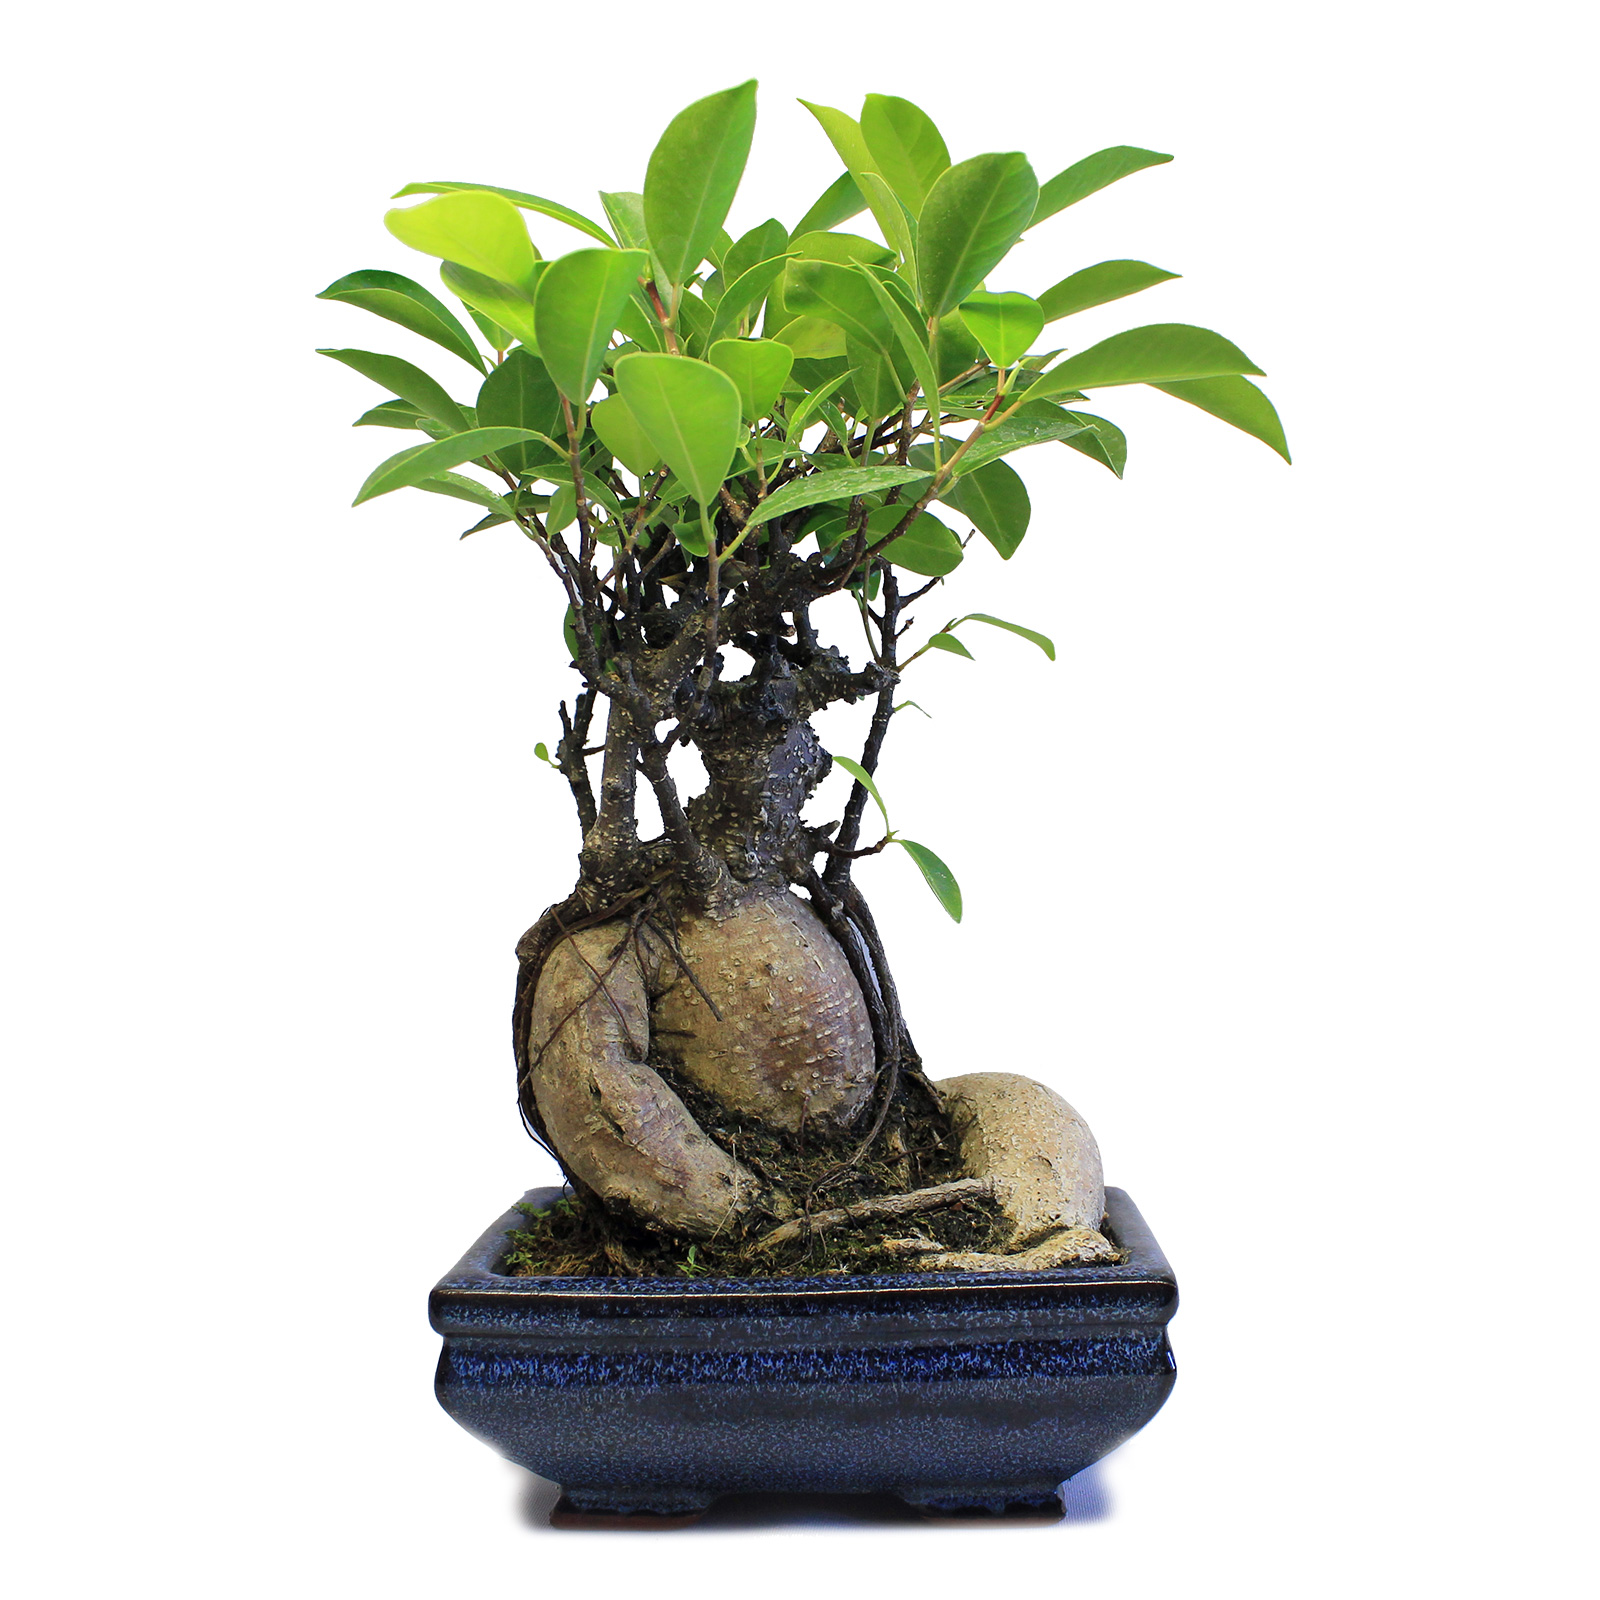 ginseng bonsai pictures to pin on pinterest. Black Bedroom Furniture Sets. Home Design Ideas